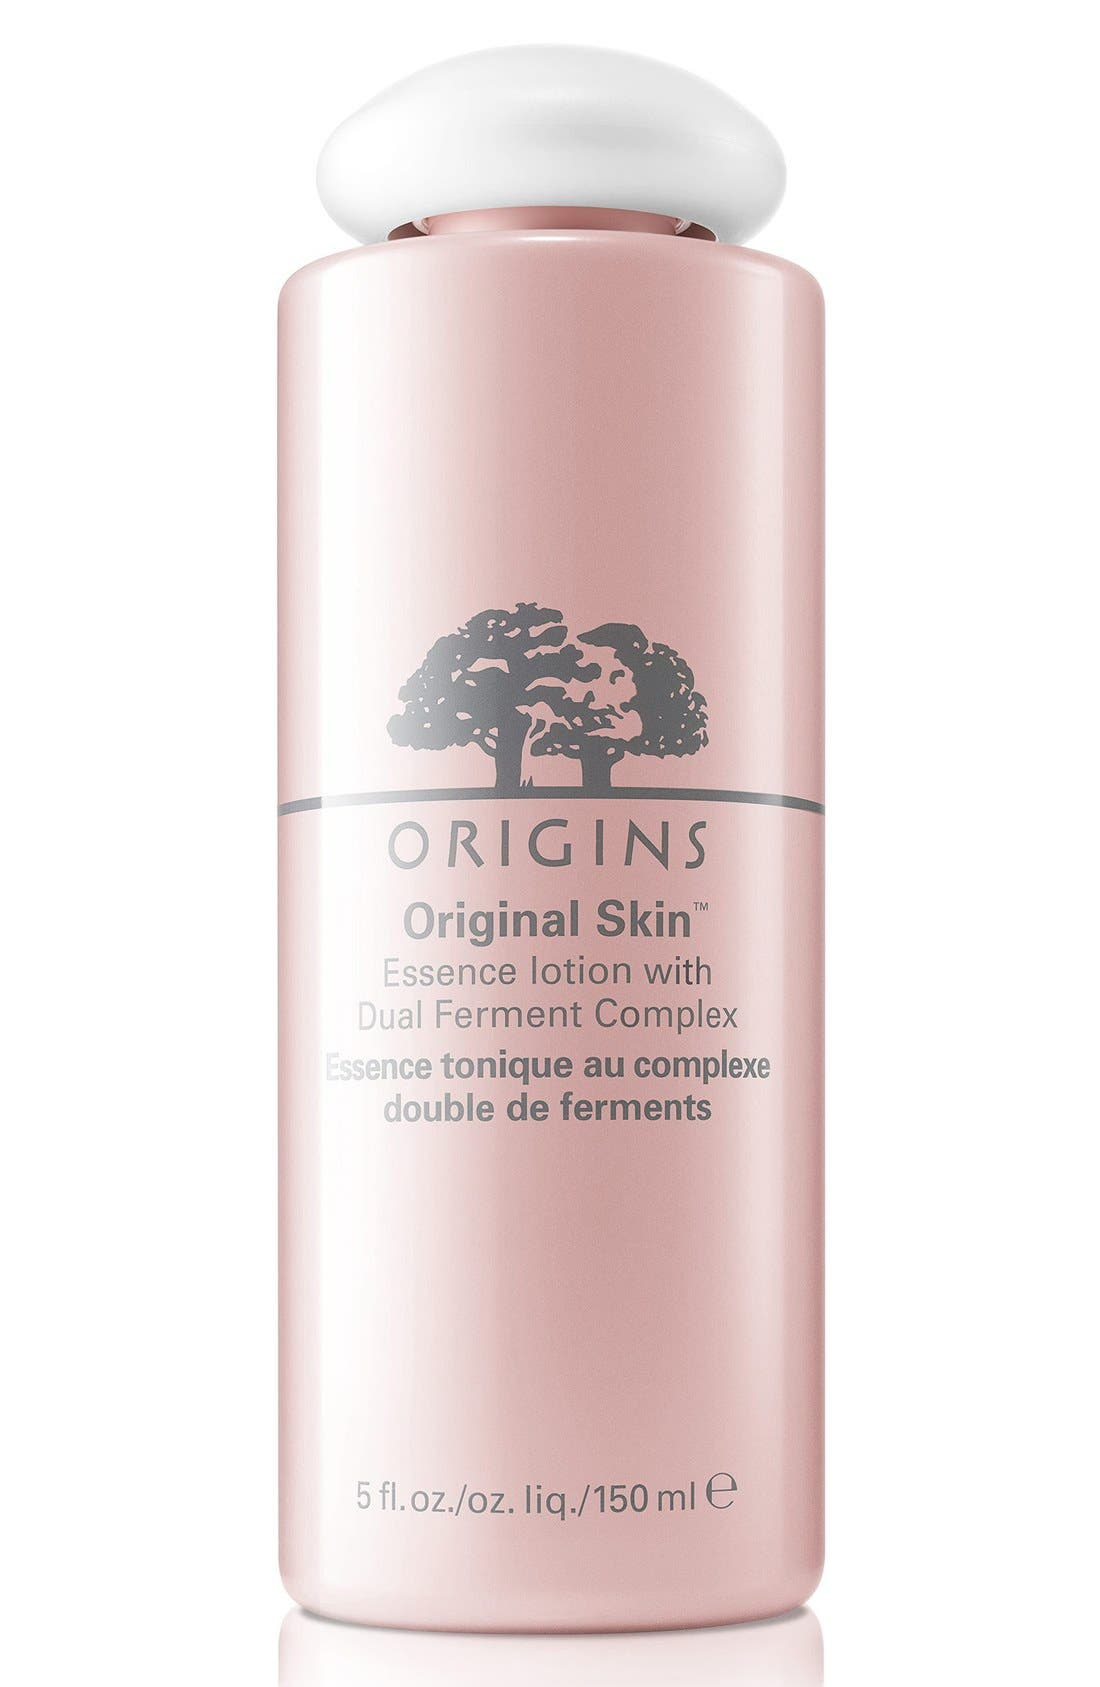 Origins Original Skin™ Essence Lotion